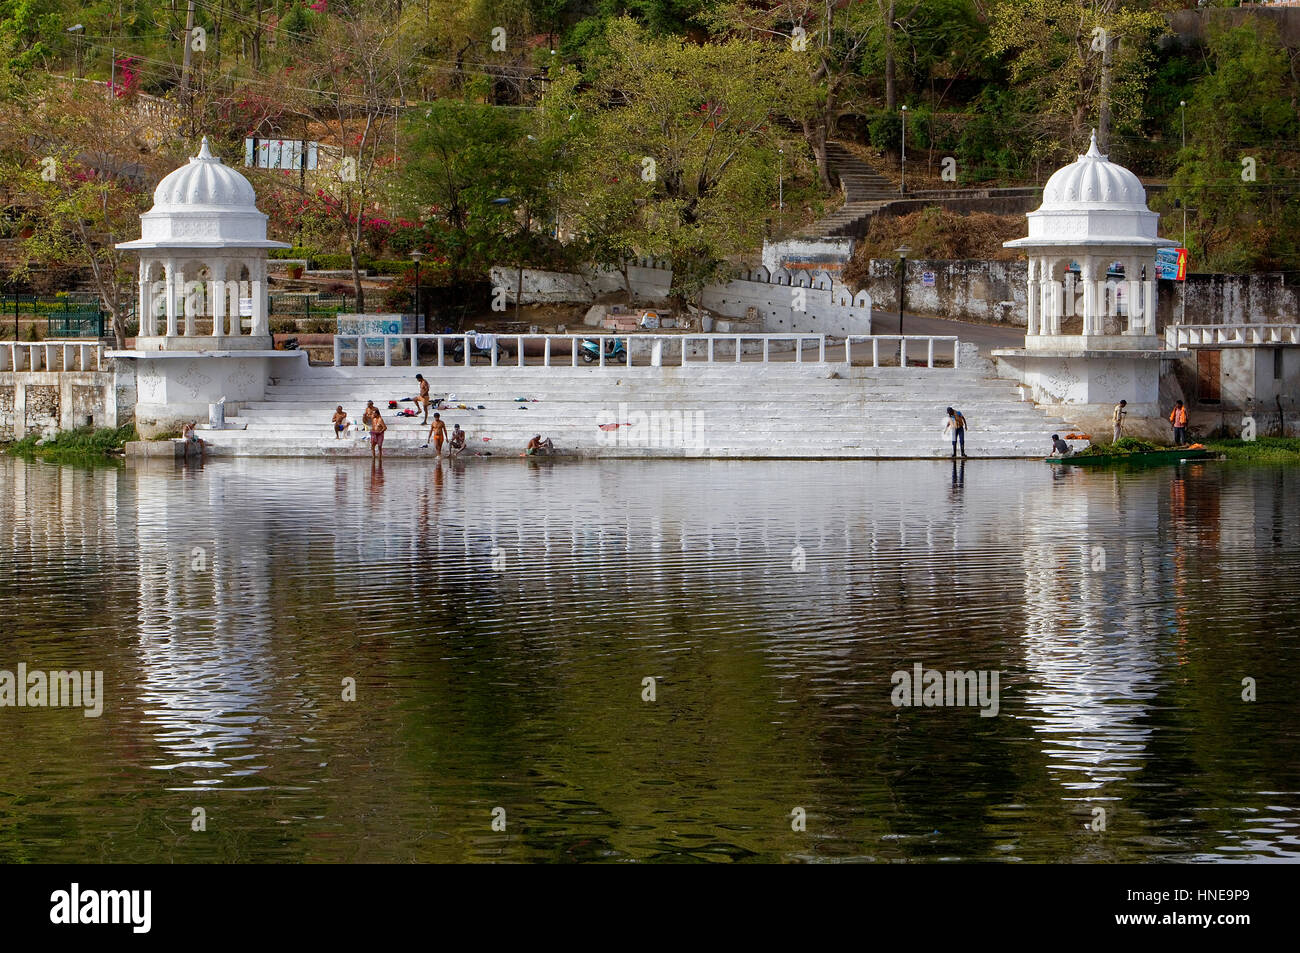 Dudh Talai lake, in Asiad park,Udaipur, Rajasthan, india - Stock Image